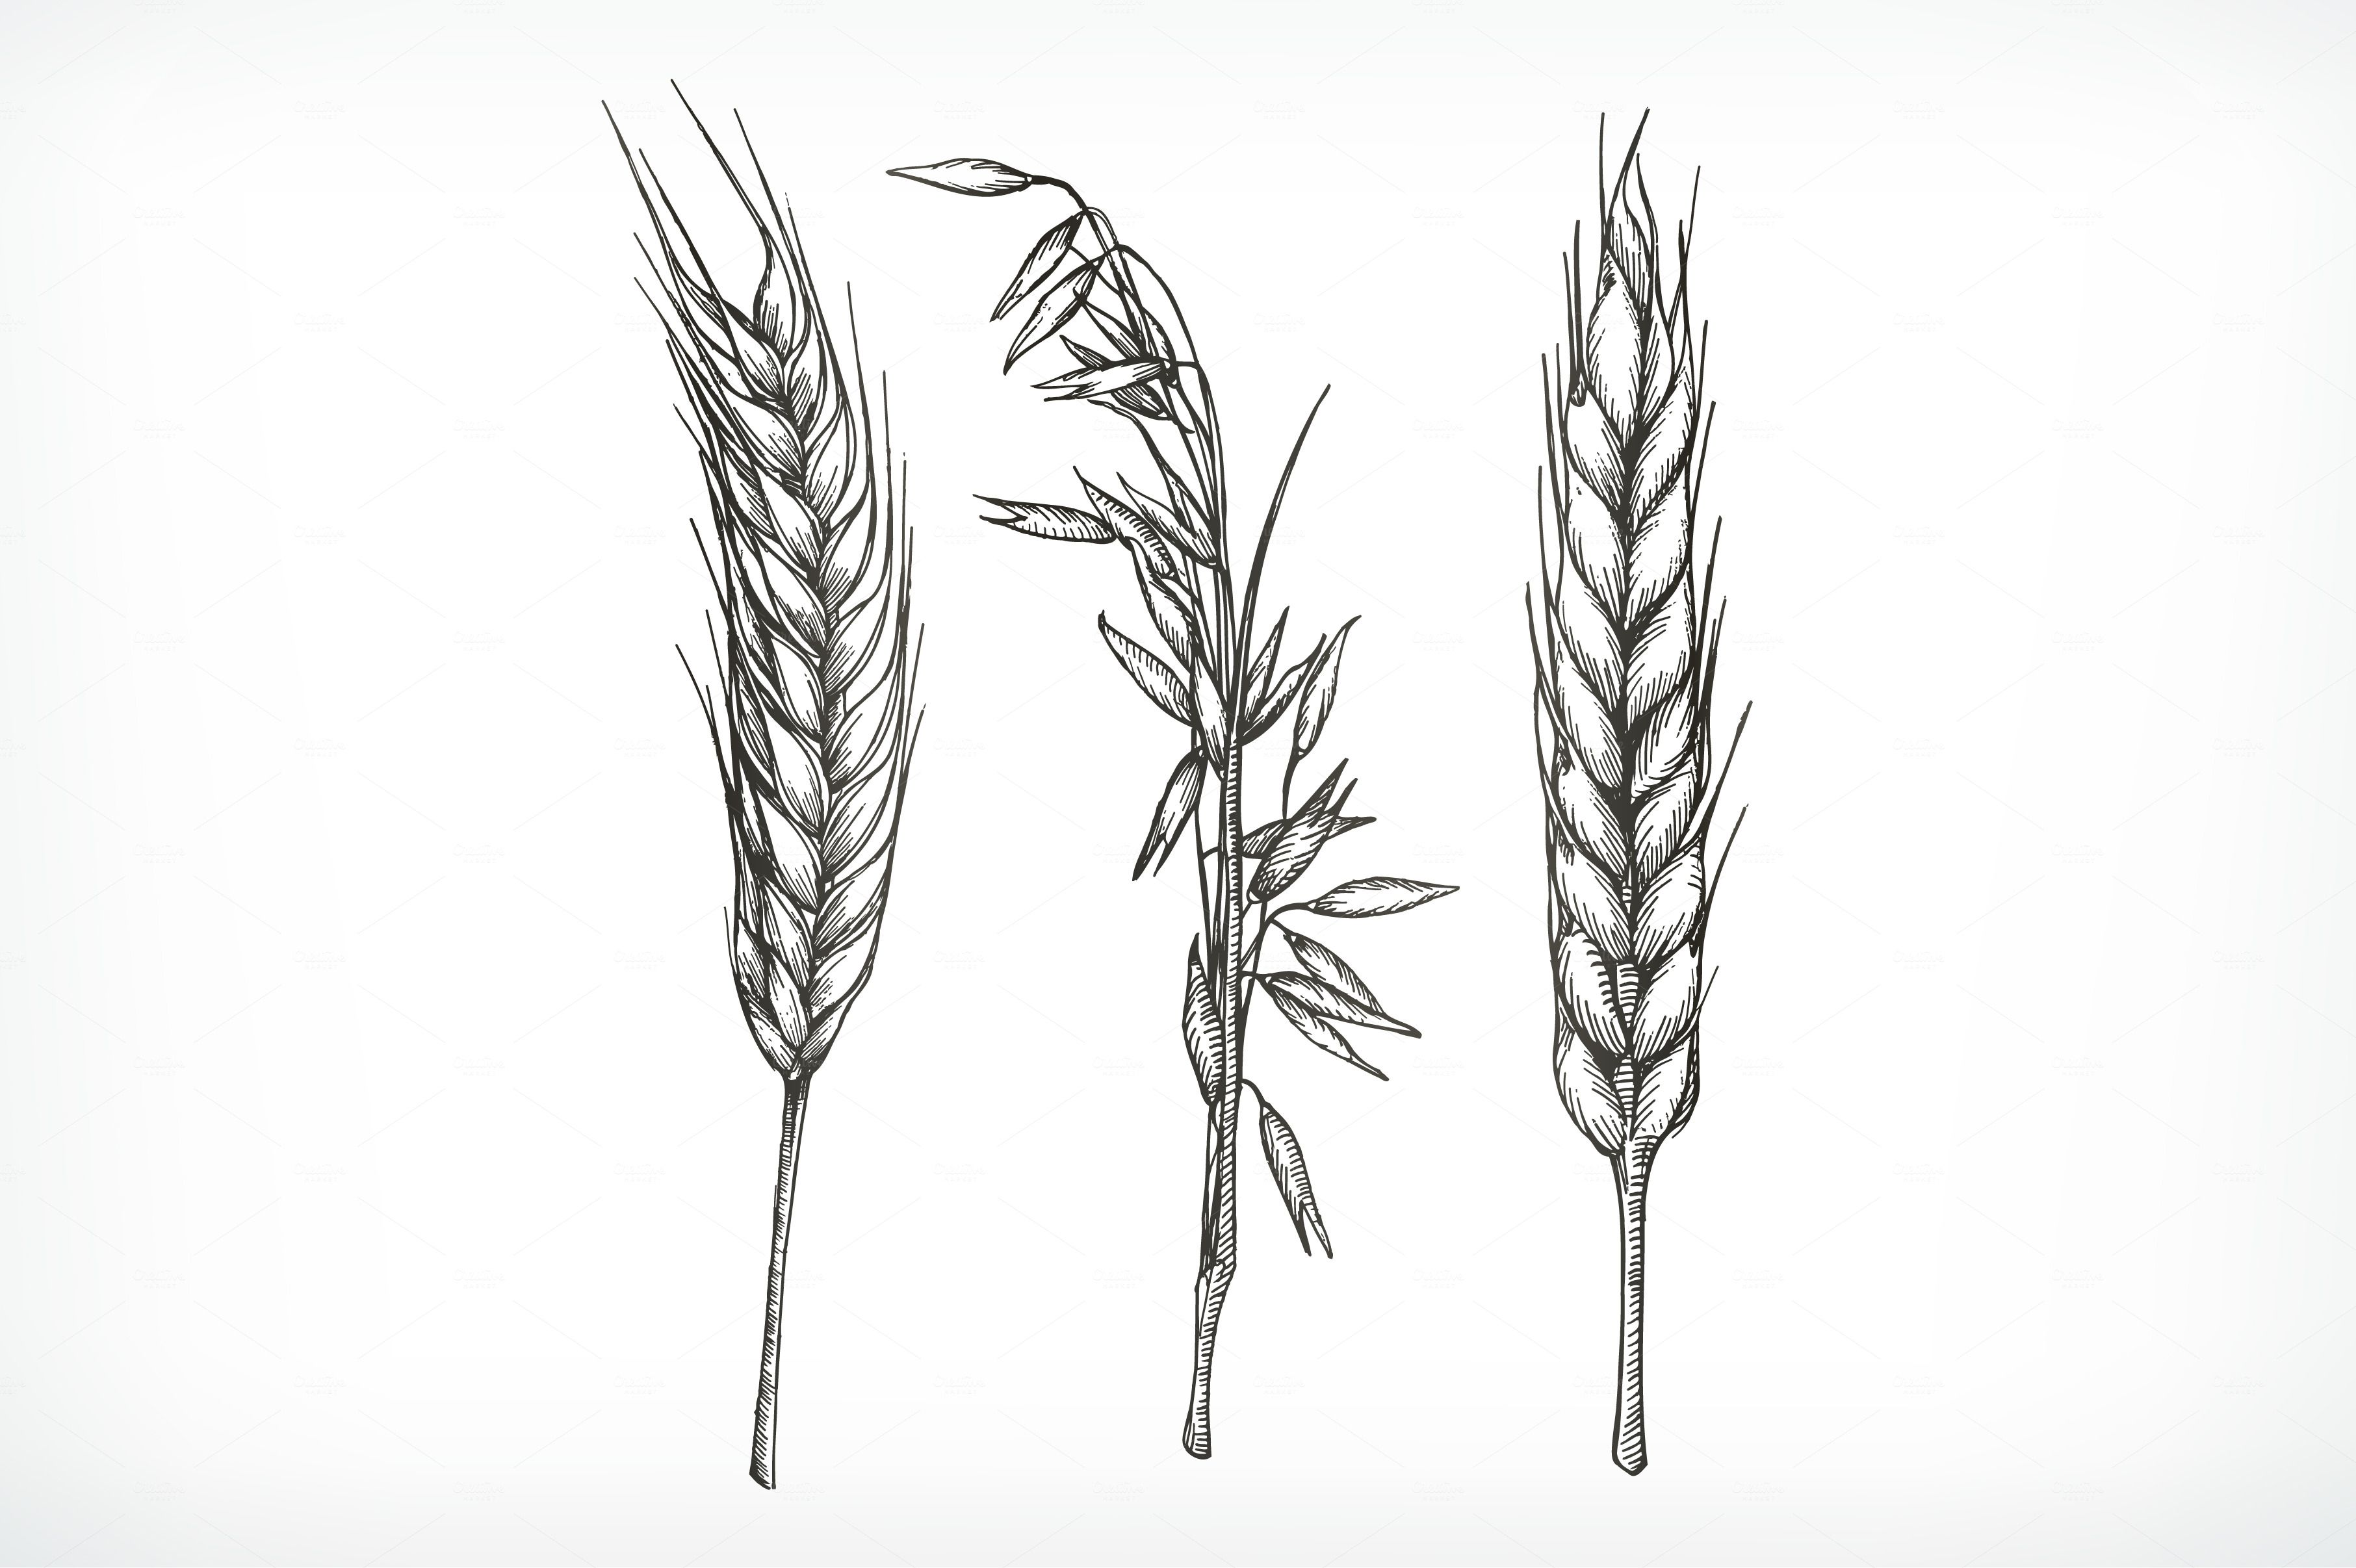 Crops Wheat And Oat Sketches By Allevinatis Studio On